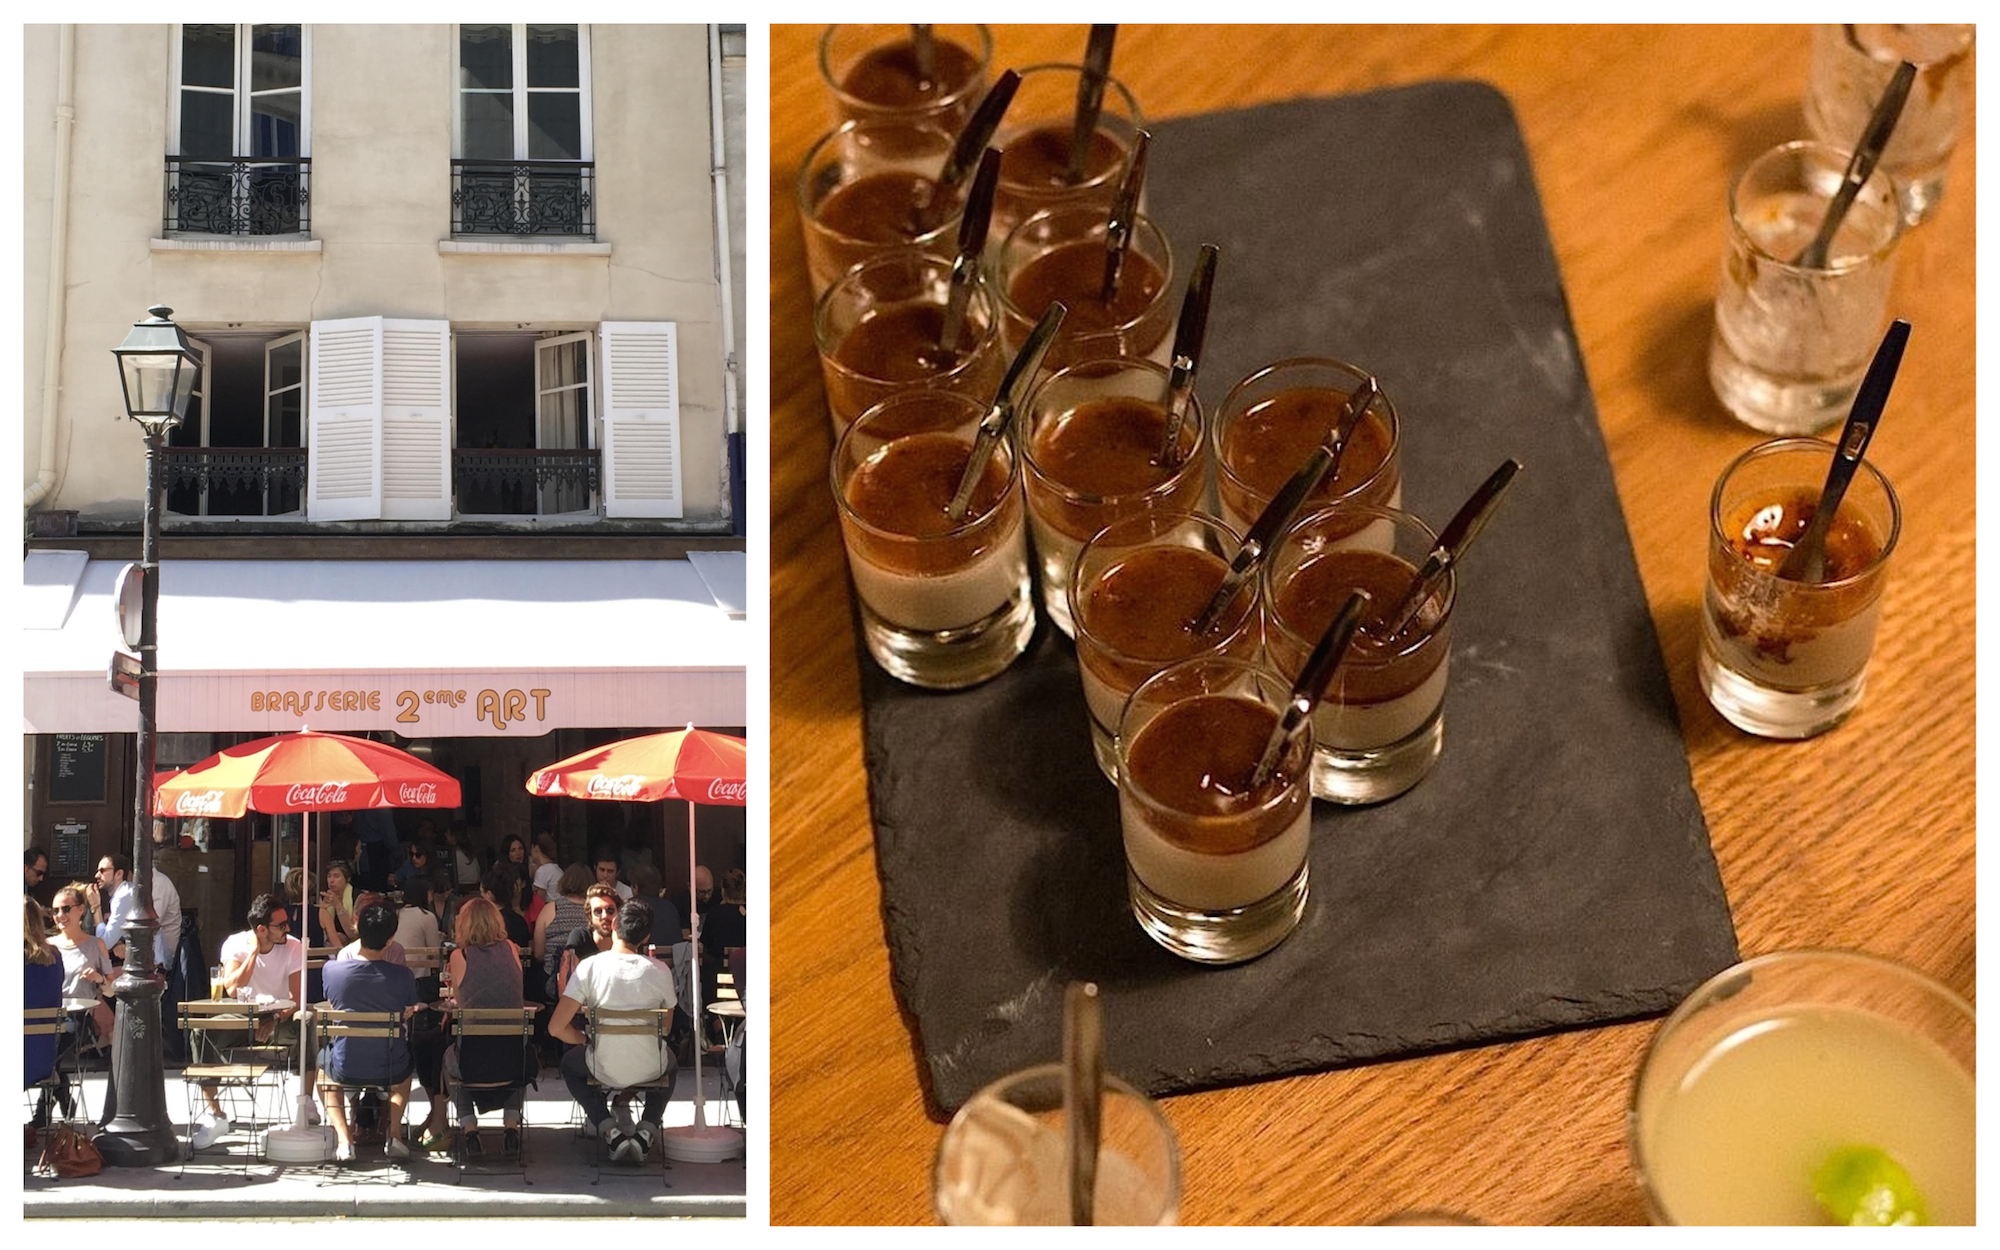 The best vegan restaurants for French food, like Brasserie 2ème art with its sunny terrace (left) and Niébé, which offers tasty homemade chocolate desserts (right).